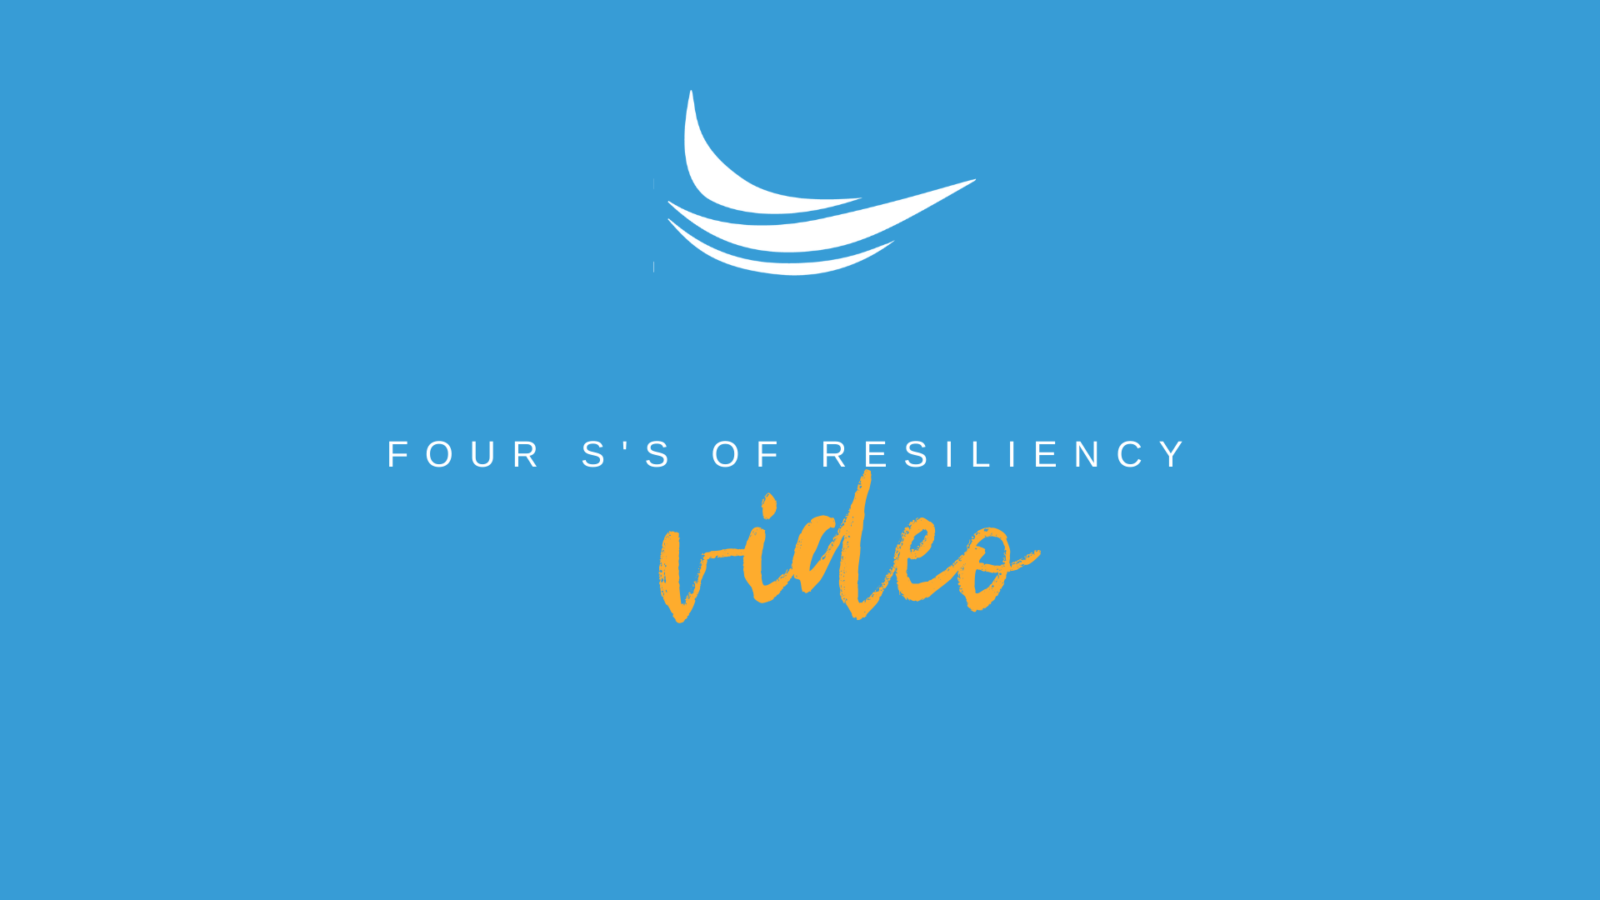 Four S's of Resiliency